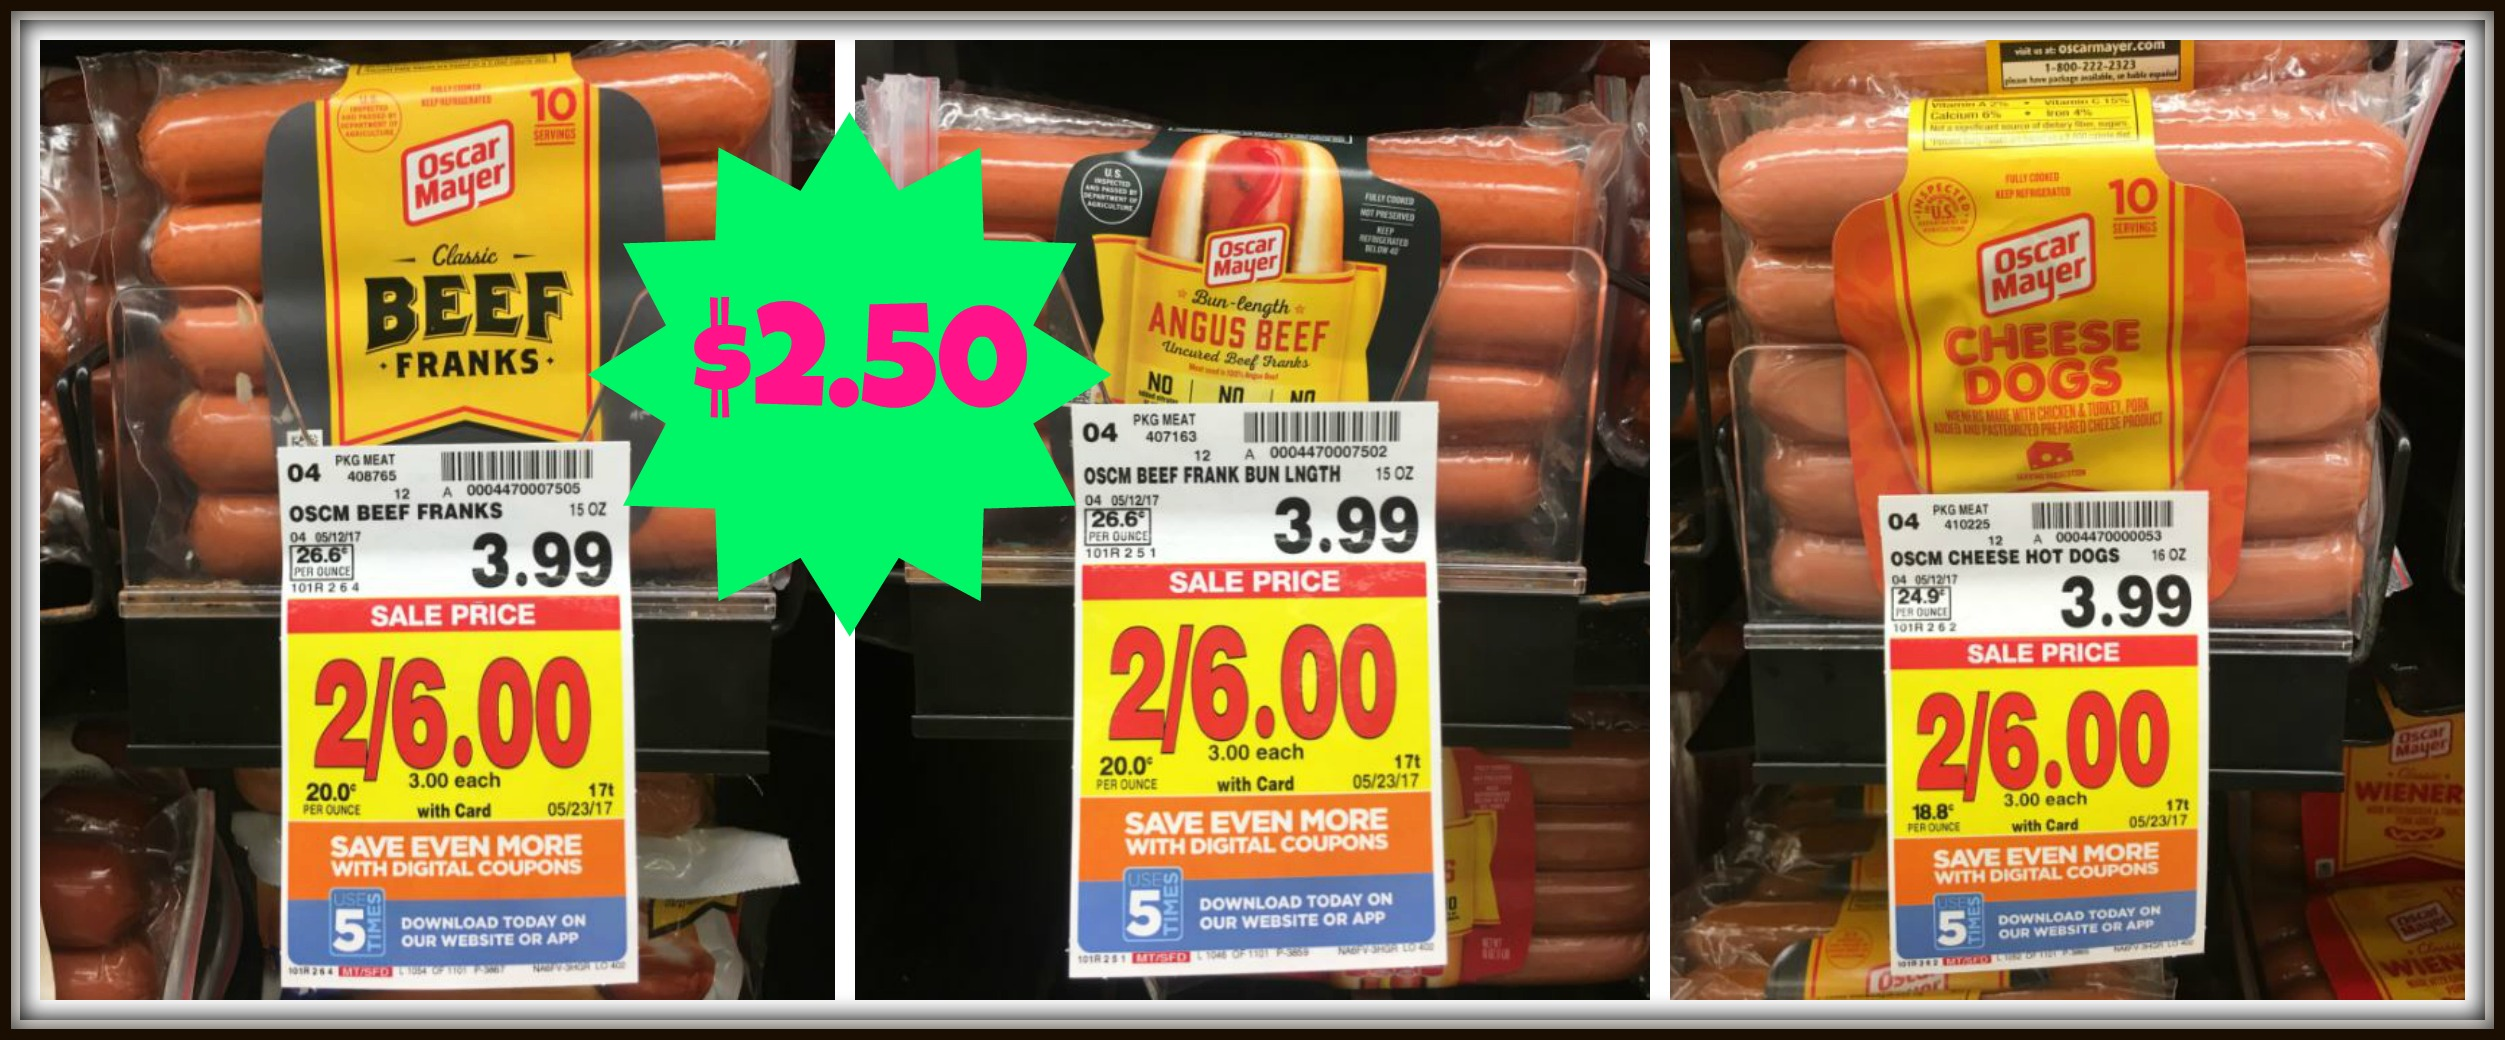 picture about Oscar Meyer Printable Coupons referred to as Oscar Mayer Beef Warm Canines Simply just $2.50 at Kroger (Reg $3.99